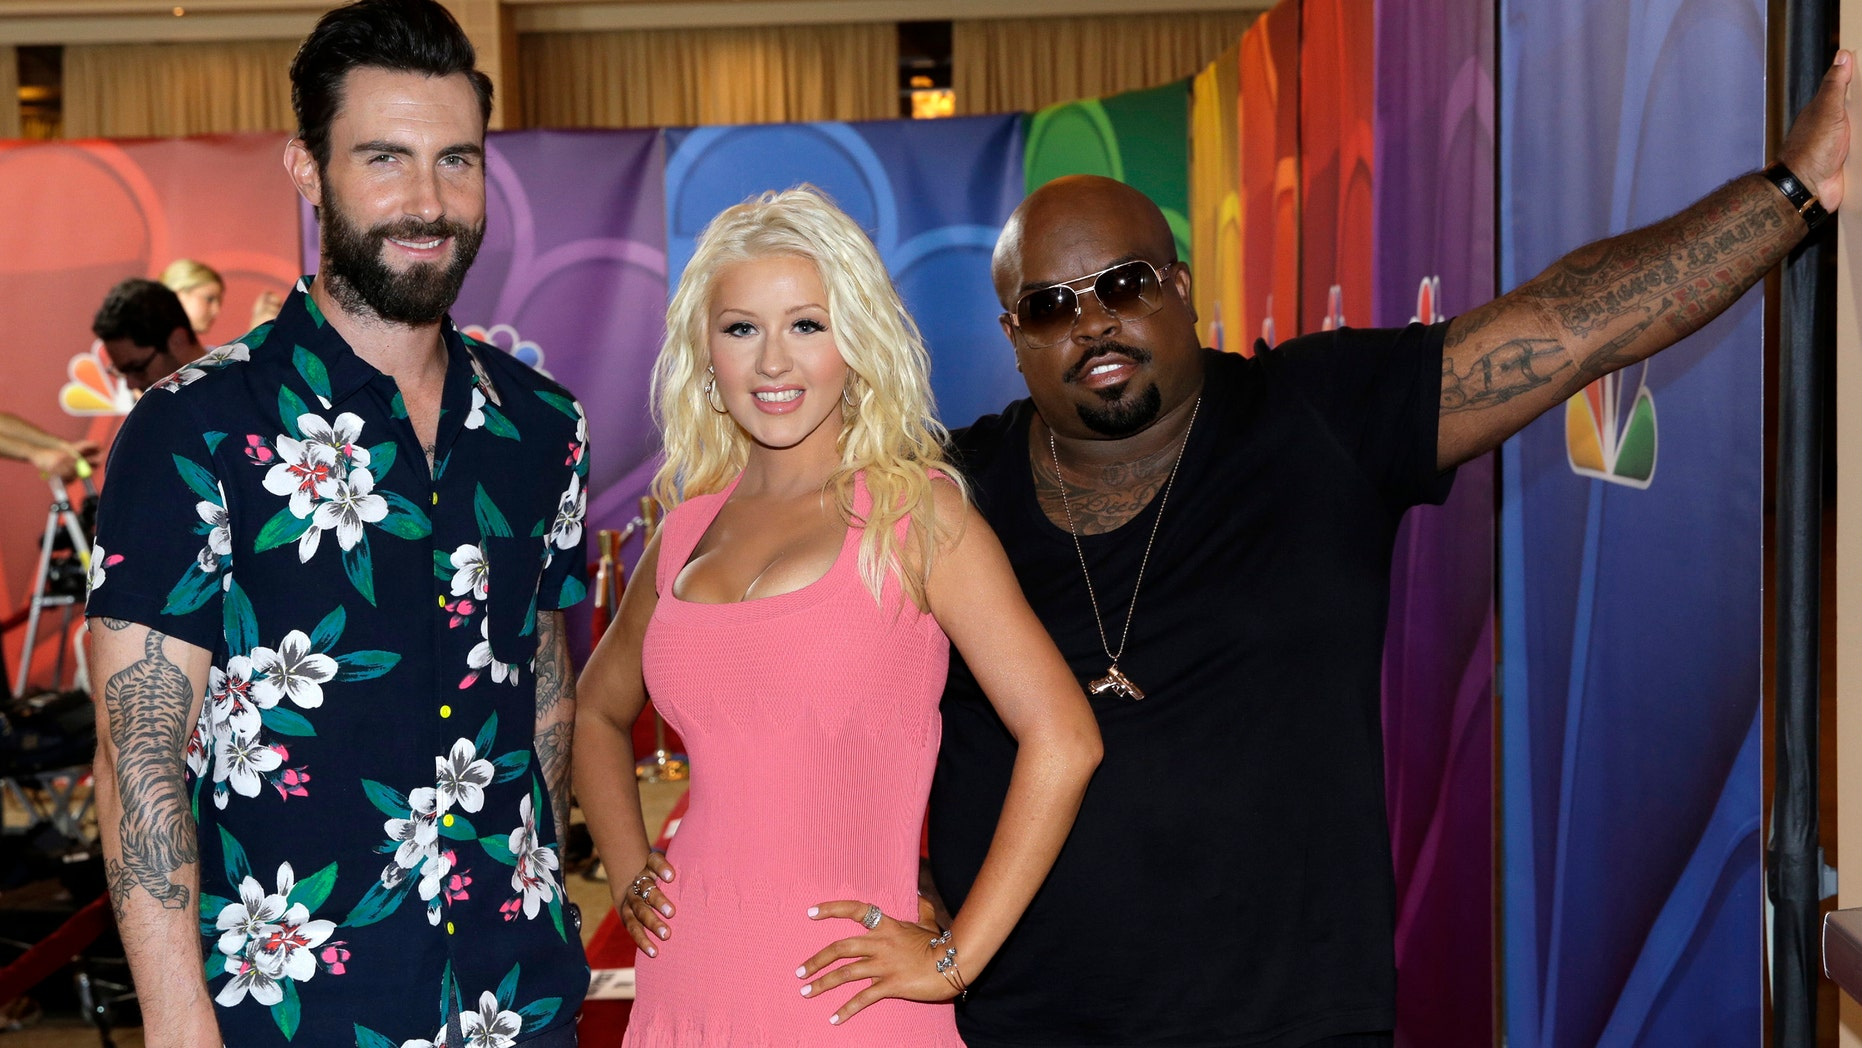 """This image released by NBC shows judges, from left, Adam Levine, Christina Aguilera, and CeeLo Green at """"The Voice"""" session during the NBCUniversal Press Tour in Beverly Hills, Calif., on Saturday, July 27, 2013. (AP Photo/NBC, Paul Drinkwater)"""